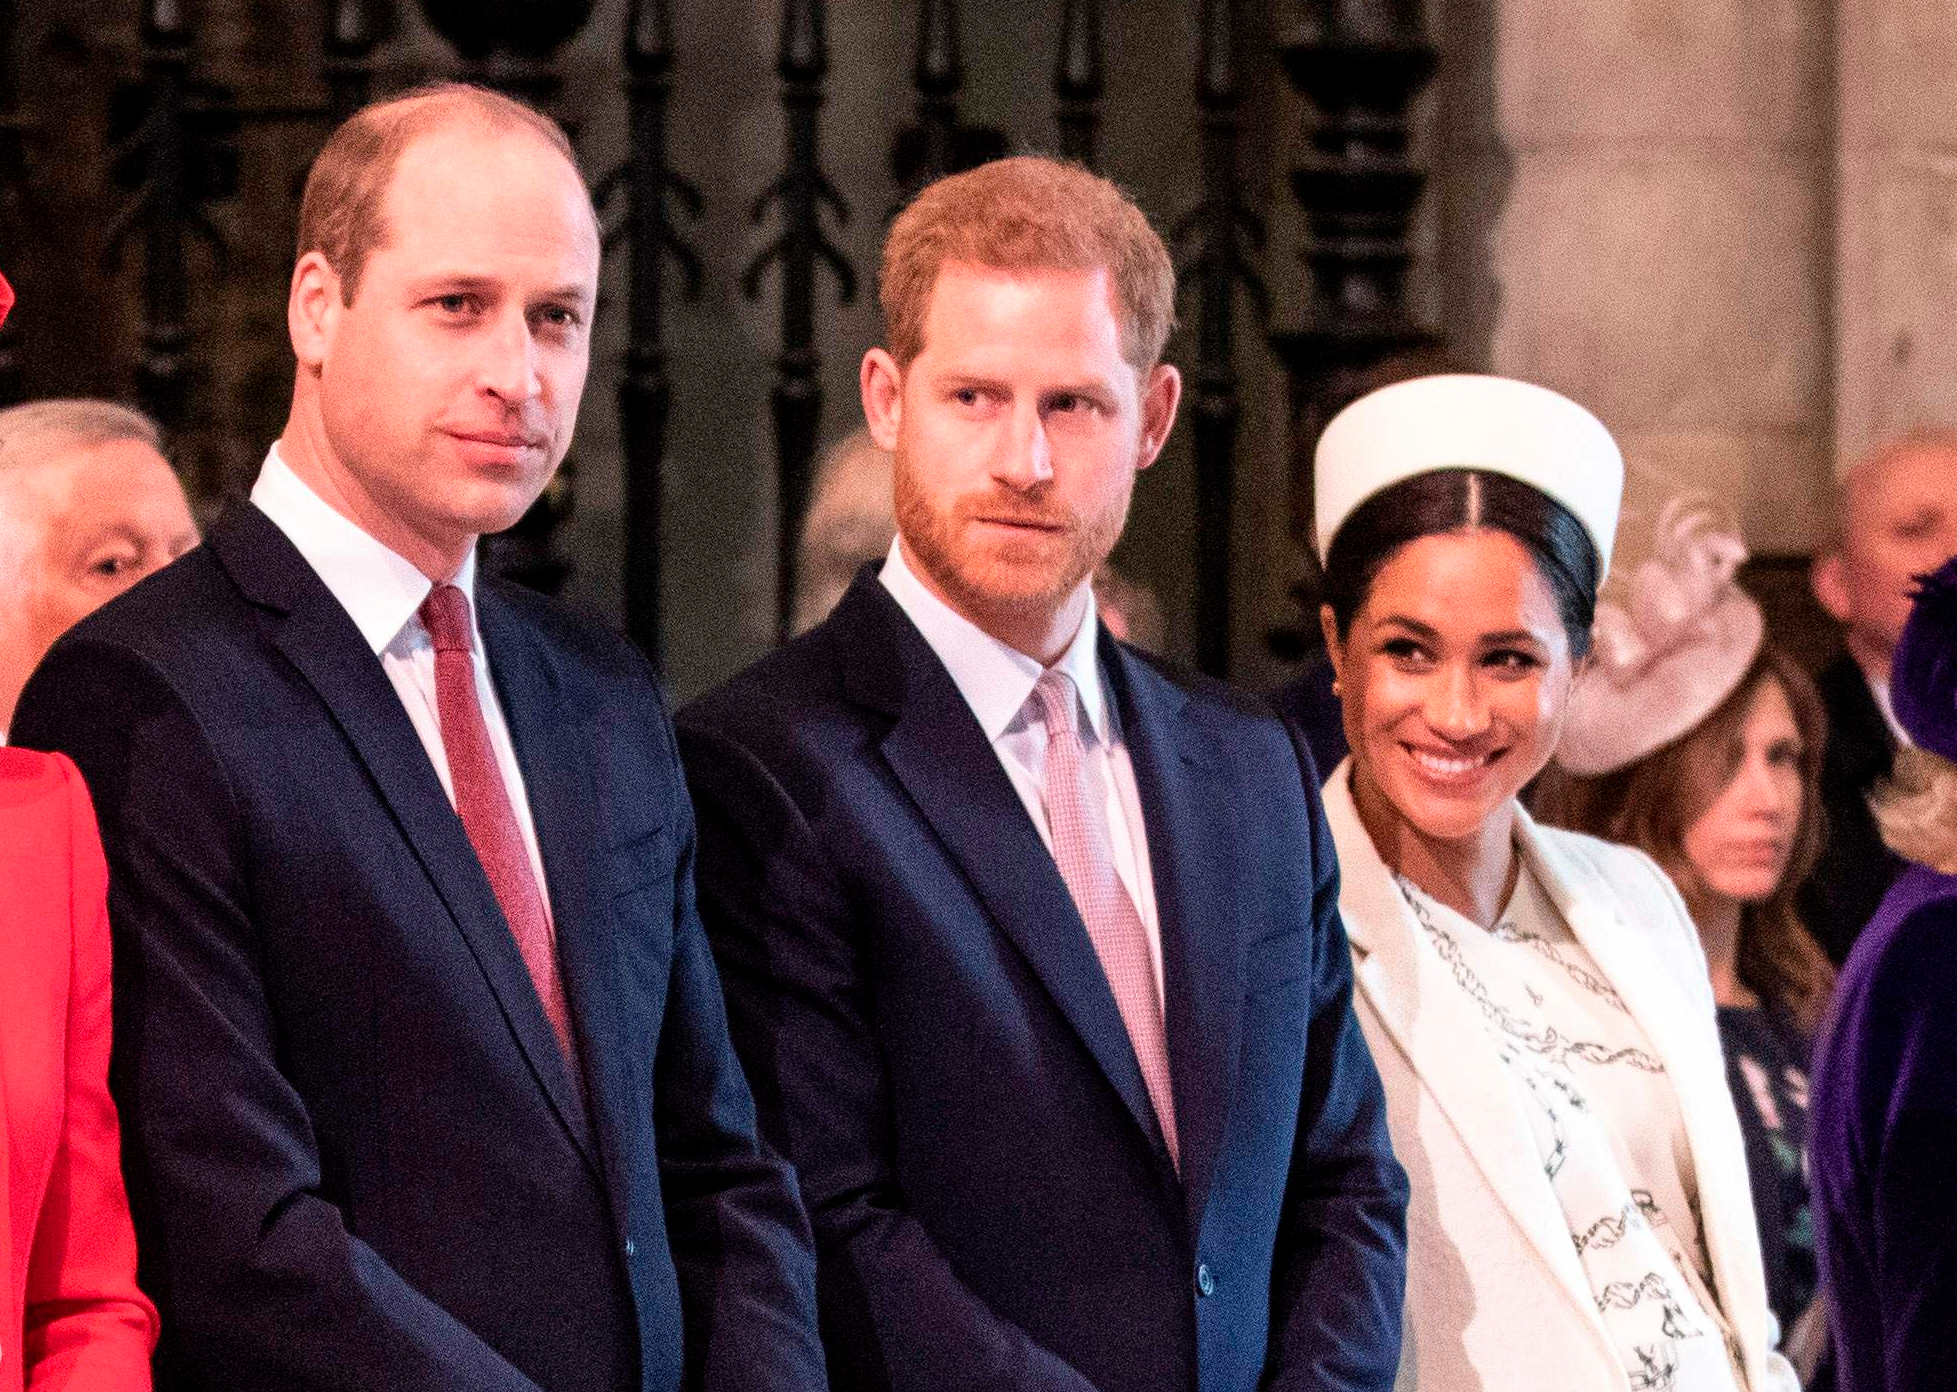 prince-william-breaks-his-silence-after-prince-harry-accuses-royals-of-being-racist